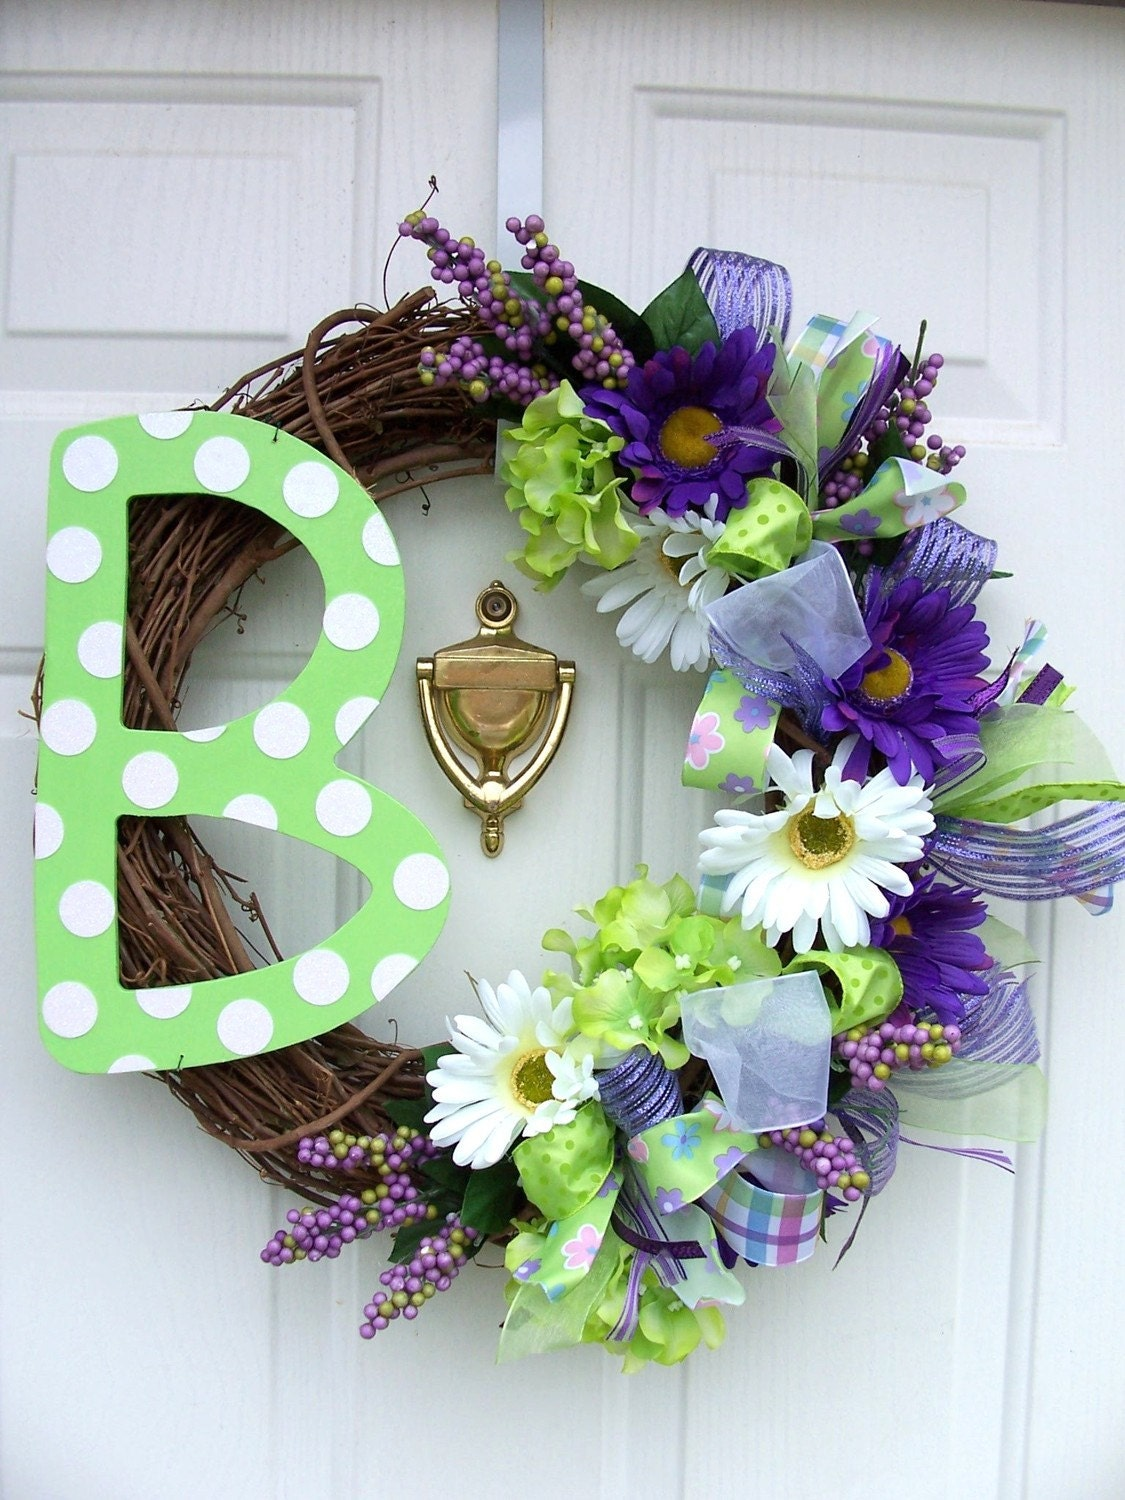 monogram initial letter spring wreath with flowers example